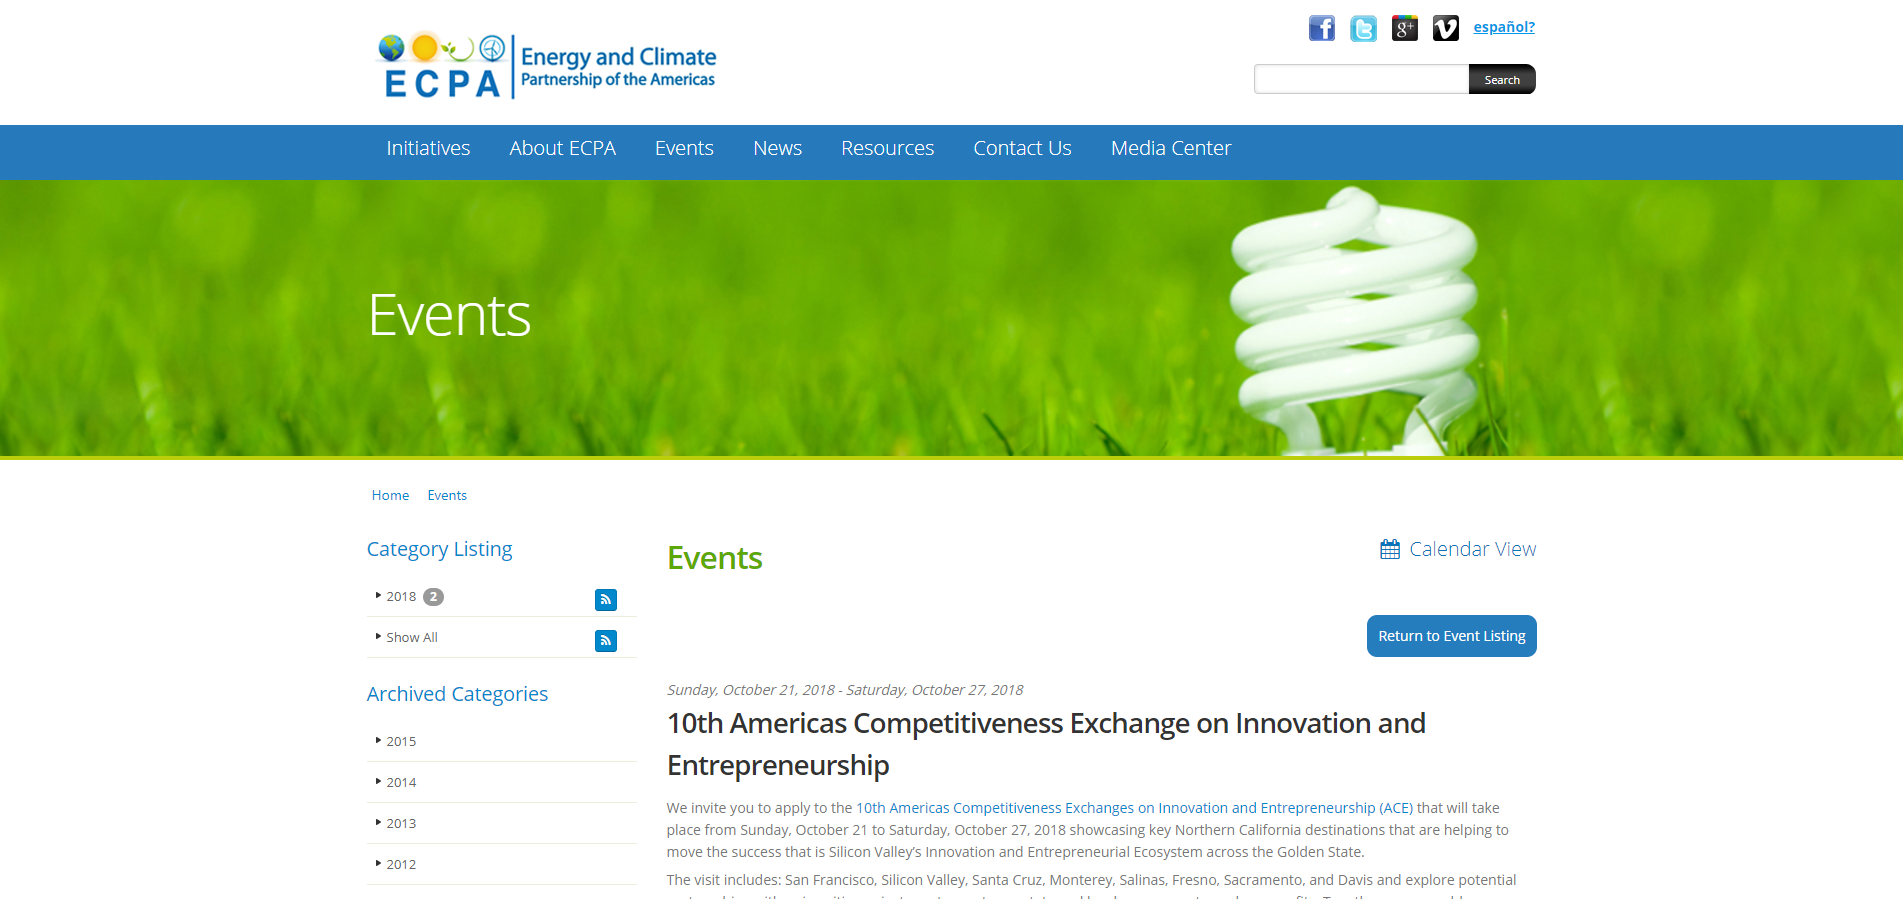 10th Americas Competitiveness Exchange on Innovation and Entrepreneurship